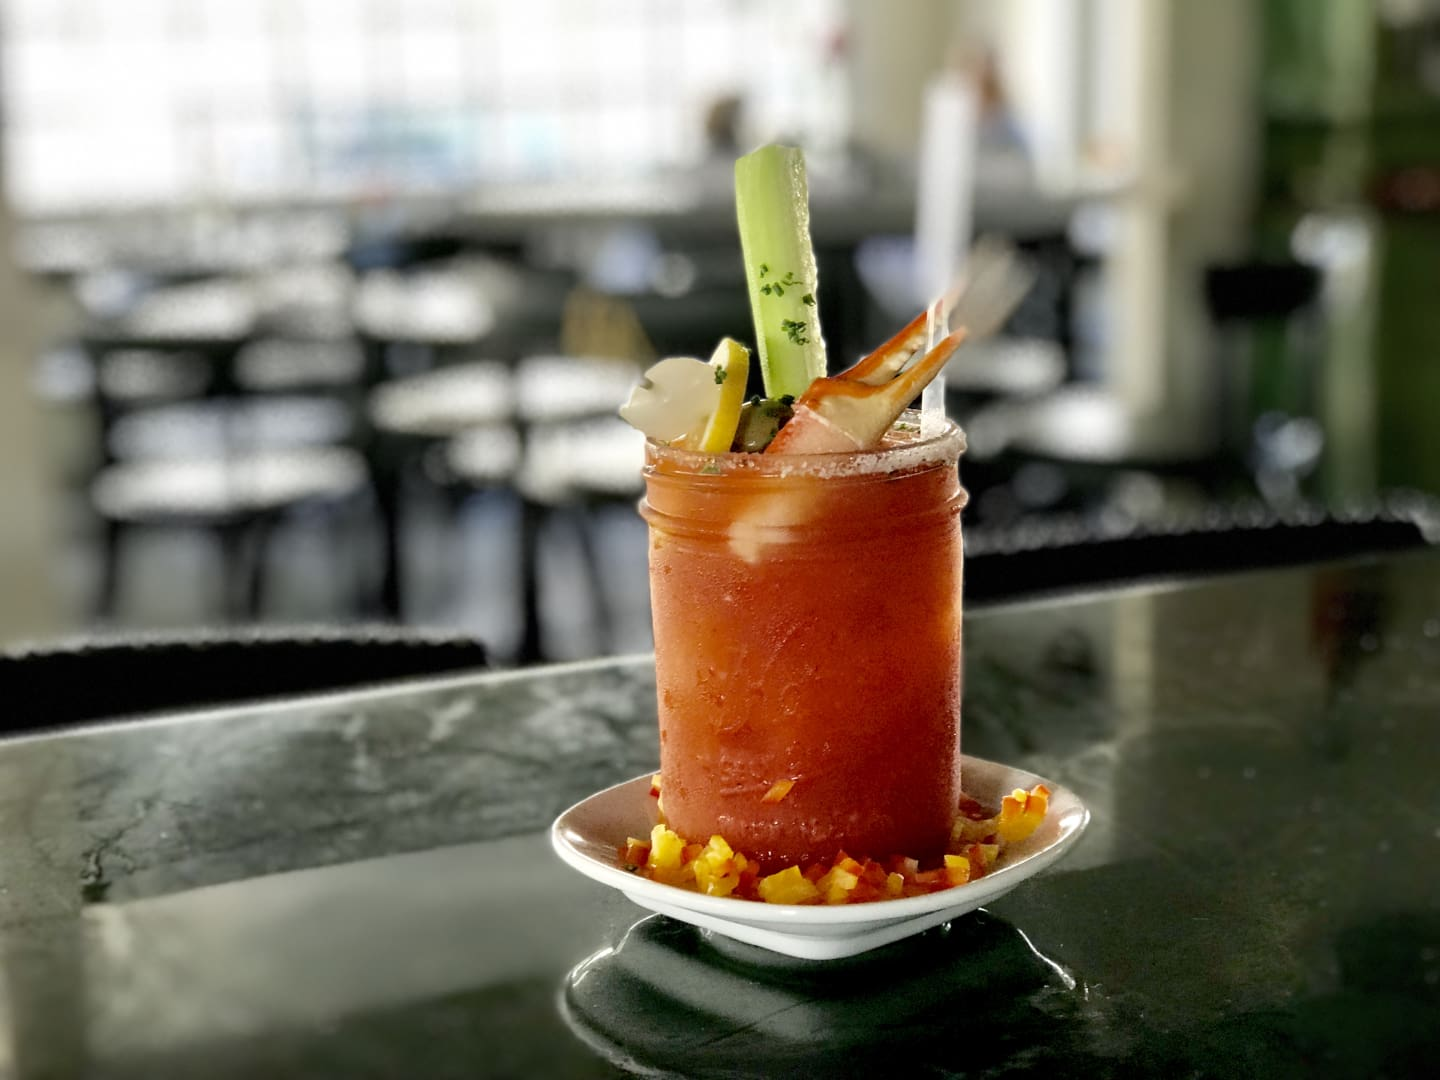 Smoked Chipotle, Crab Claw & Cucumber Bloody Mary